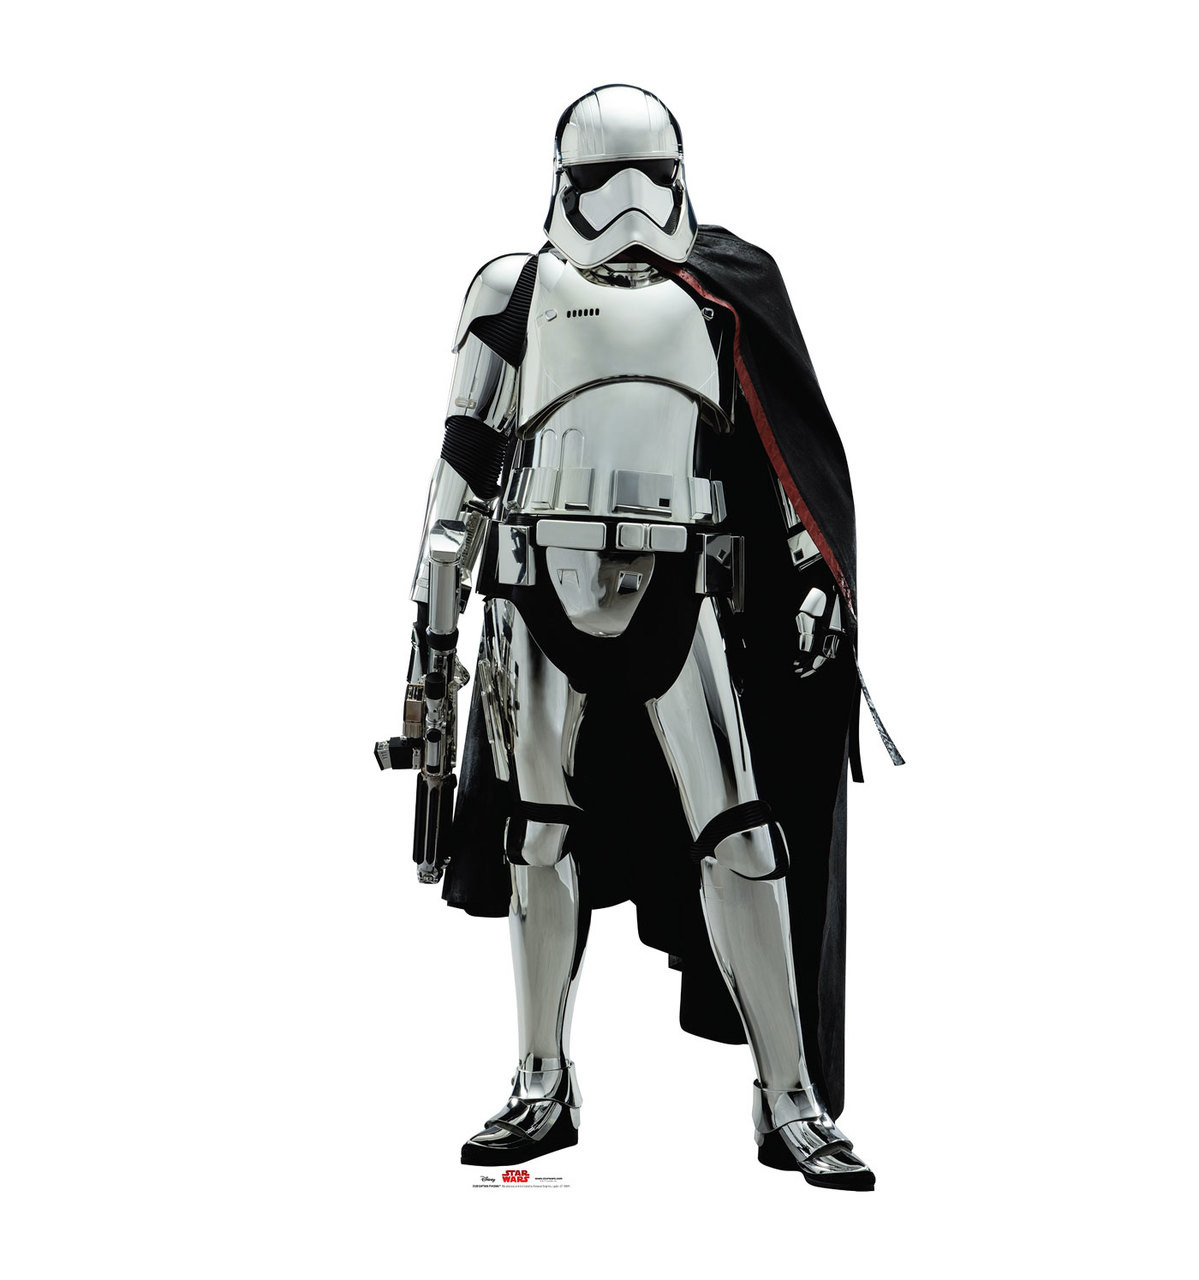 Captain Phasma - Star Wars: The Last Jedi Cardboard Cutout 1